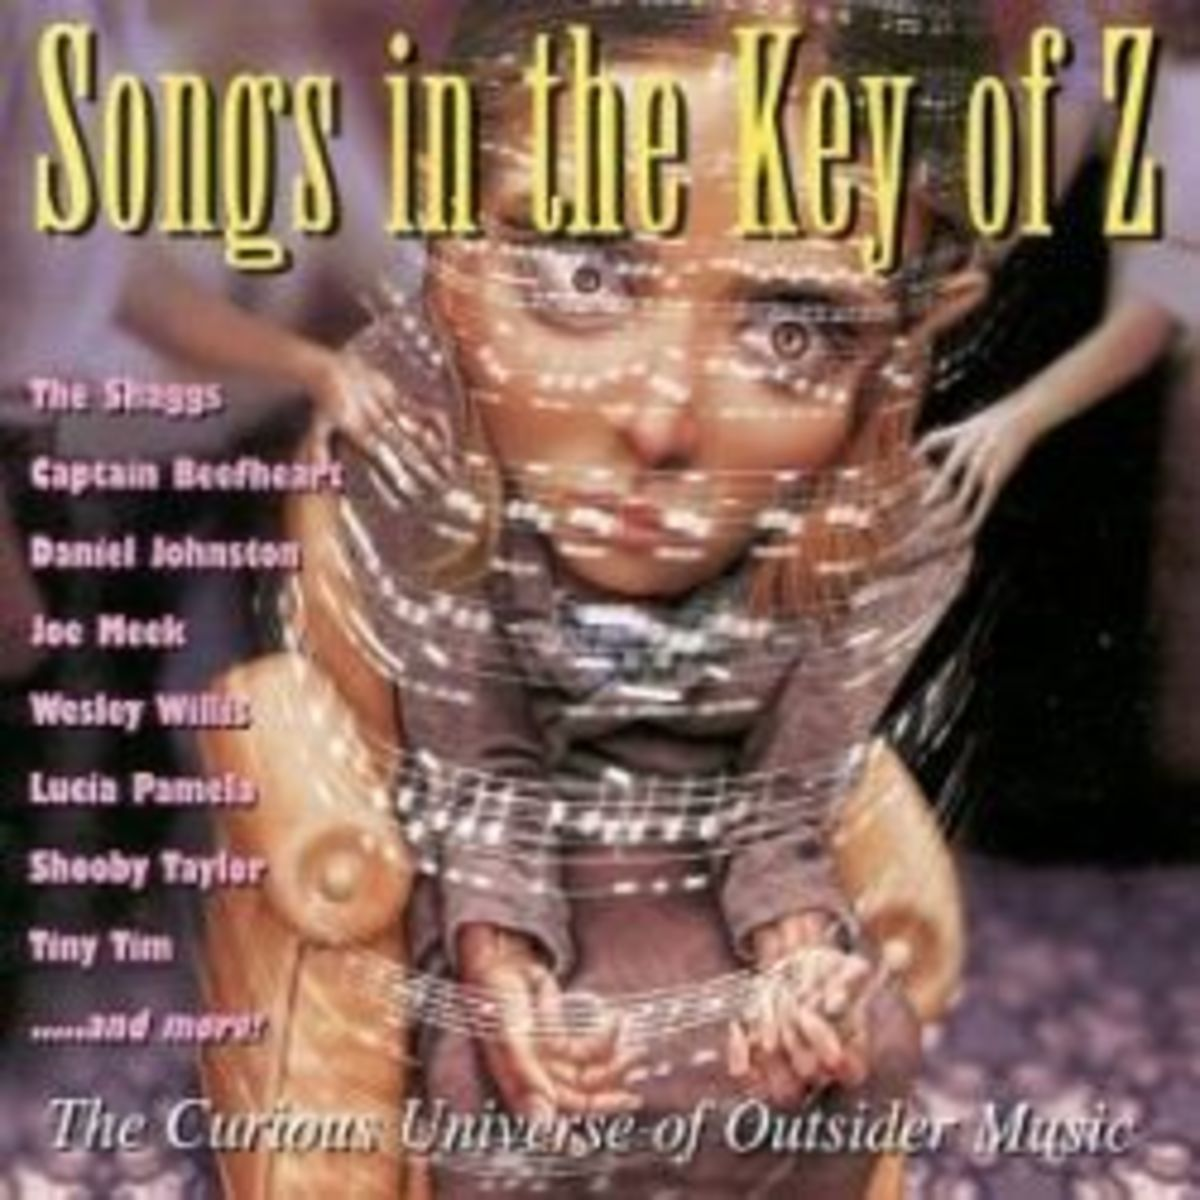 song-in-key-of-z-irwin-chusids-curious-universe-of-outsider-music